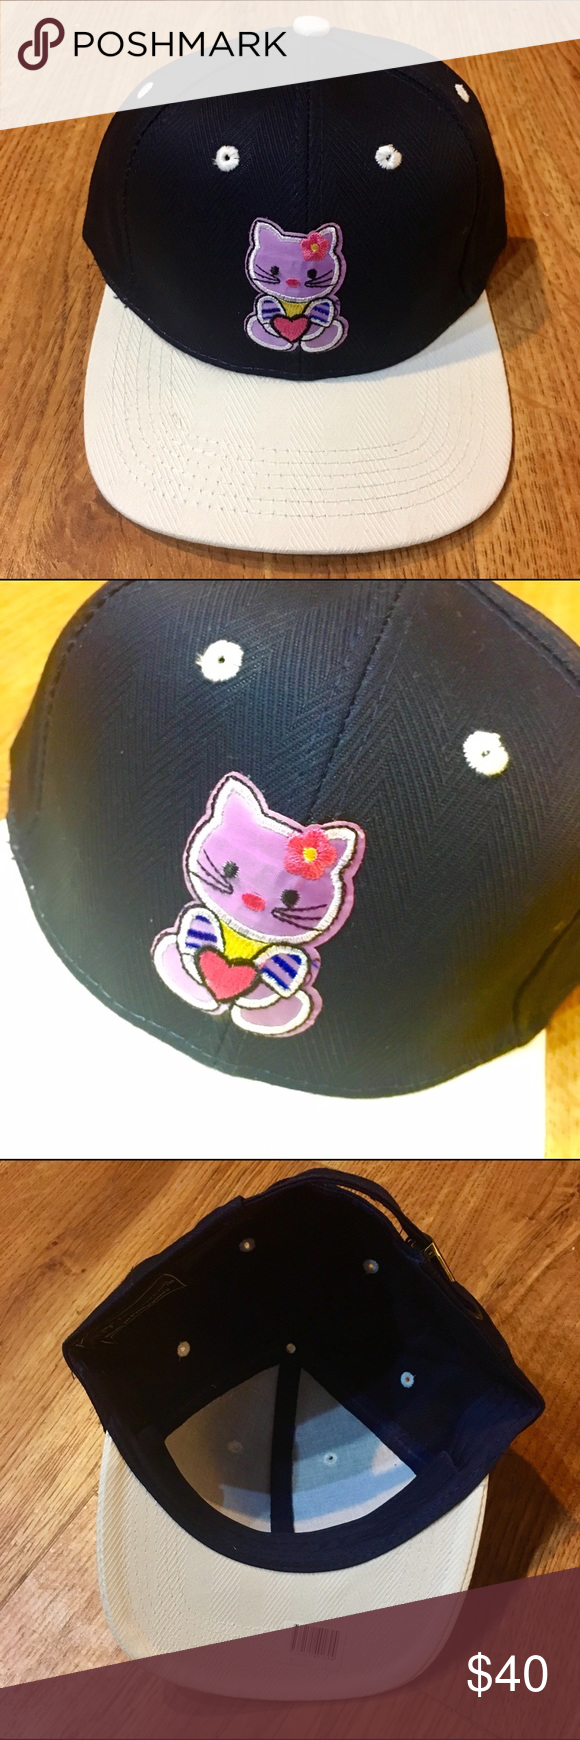 HELLO KITTY SNAPBACK HAT CAP CUTE LADIES DOPE COOL Brand new never worn. Super rare only 1 of 1 made. Hello Kitty Accessories Hats